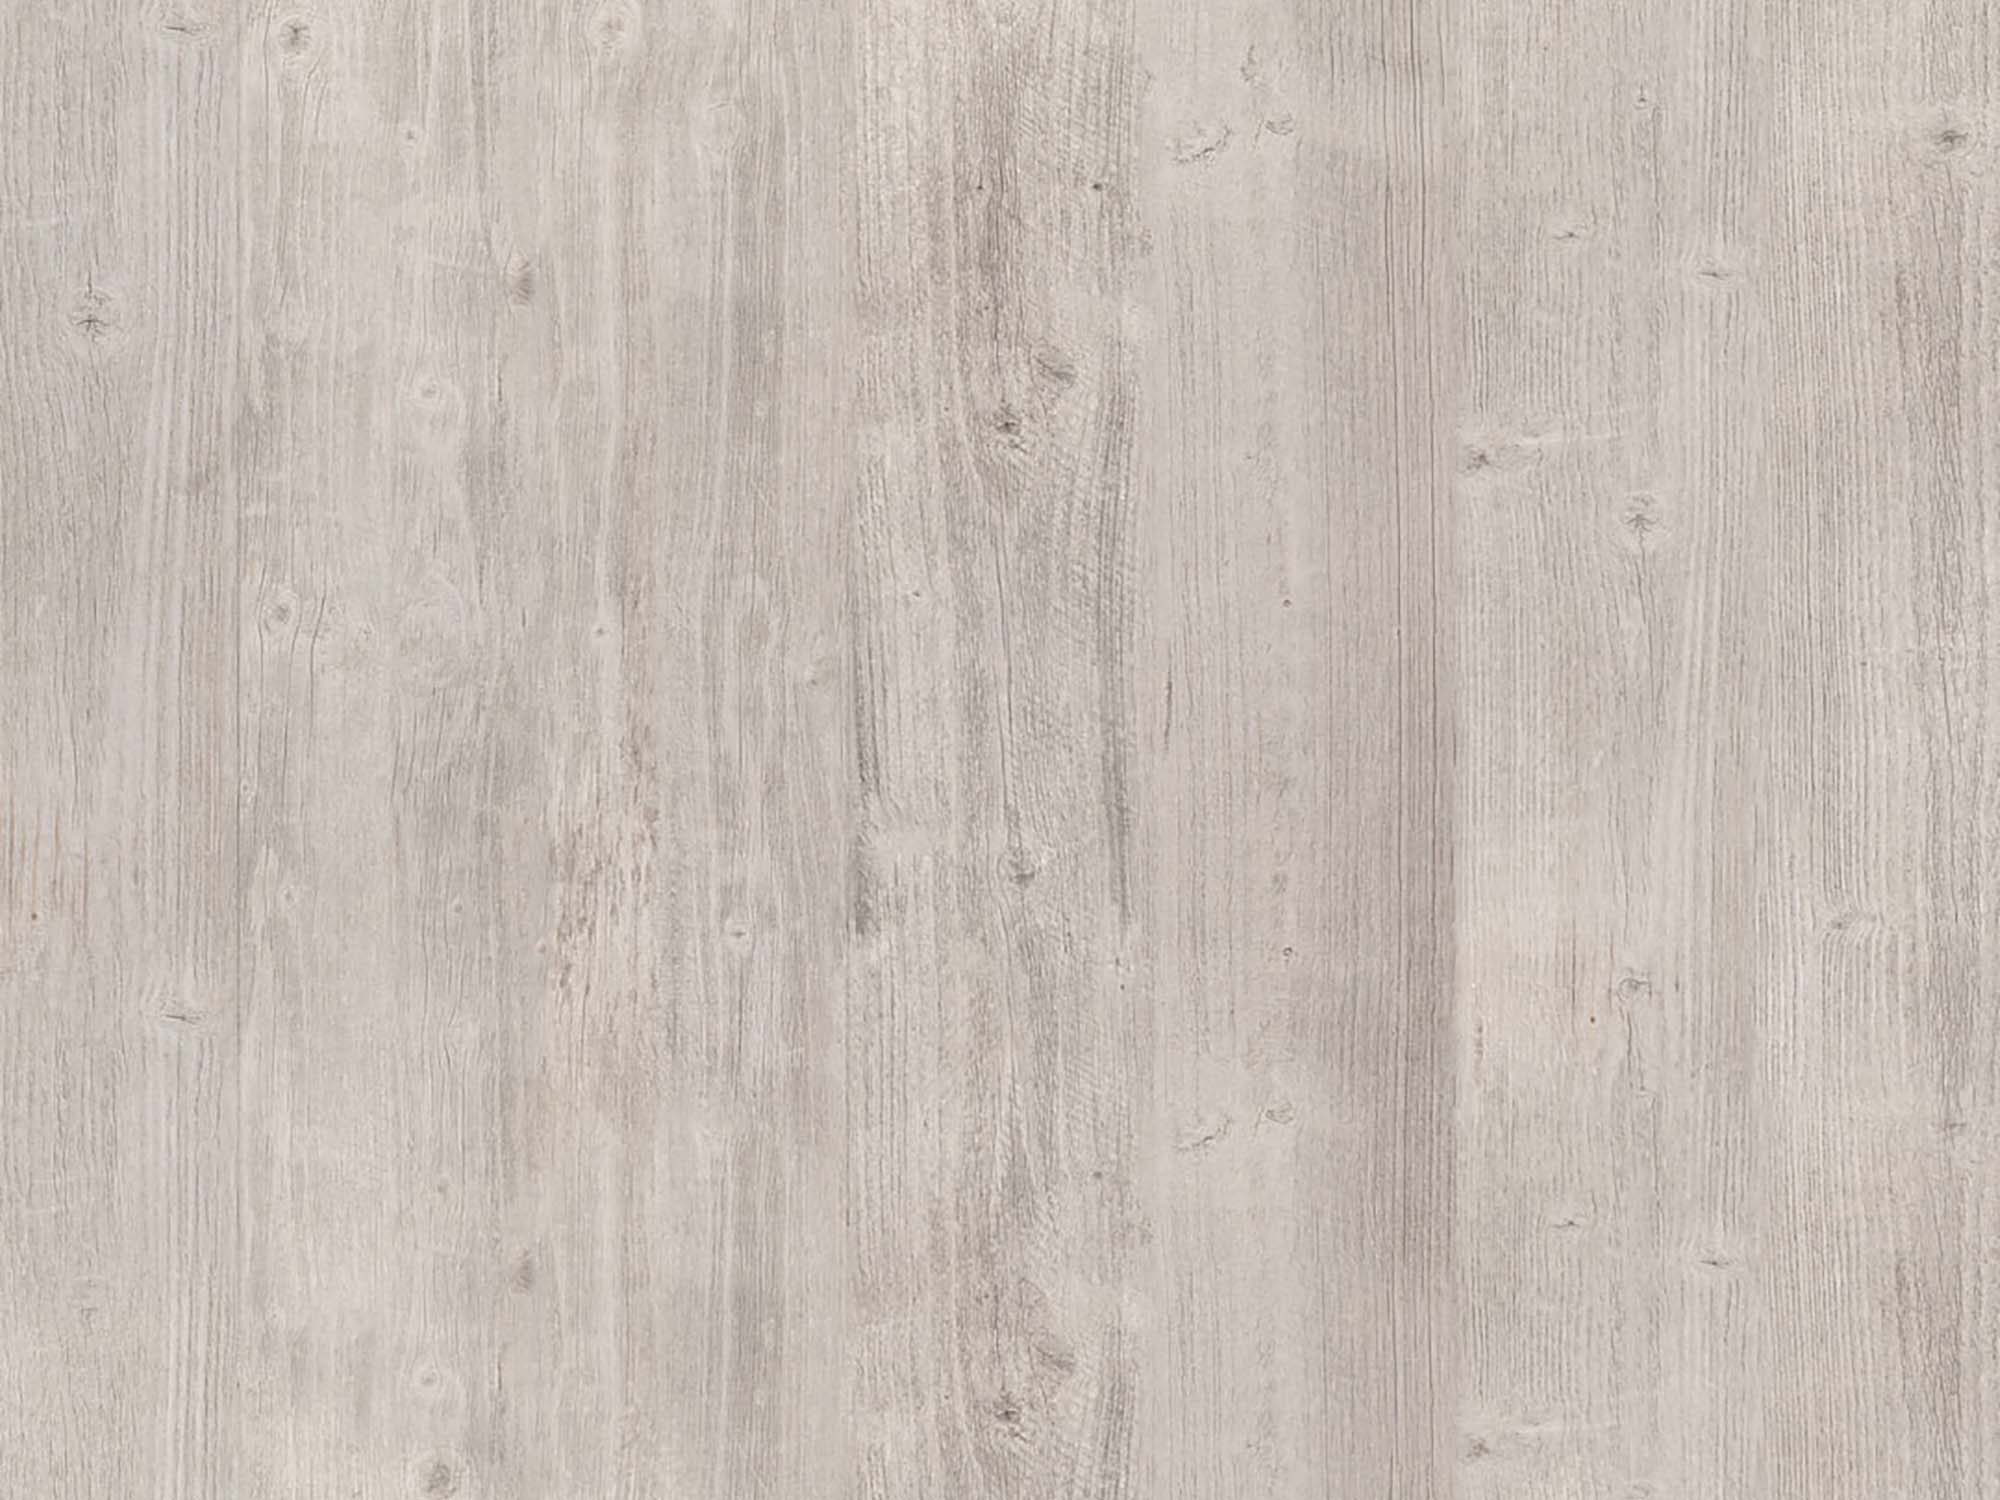 Seamless Wood Texture 2